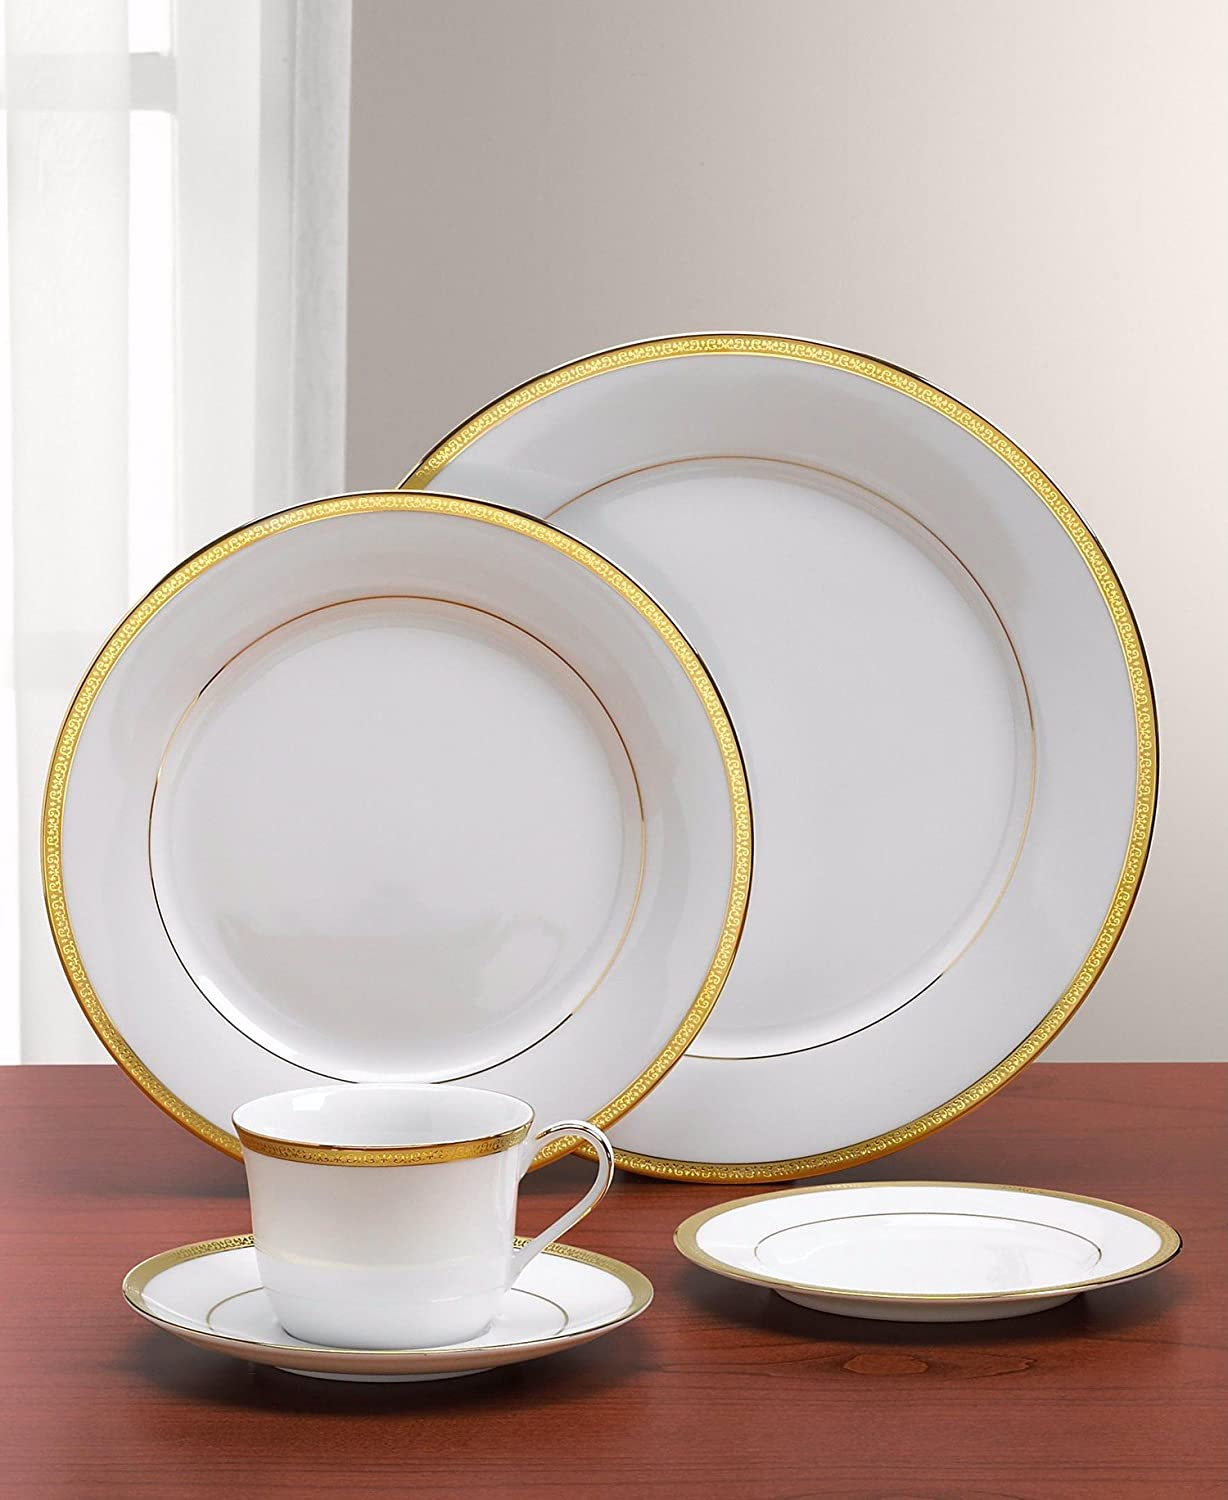 Outstanding Amazon Com Charter Club Grand Buffet Gold Platter Plates Home Interior And Landscaping Transignezvosmurscom